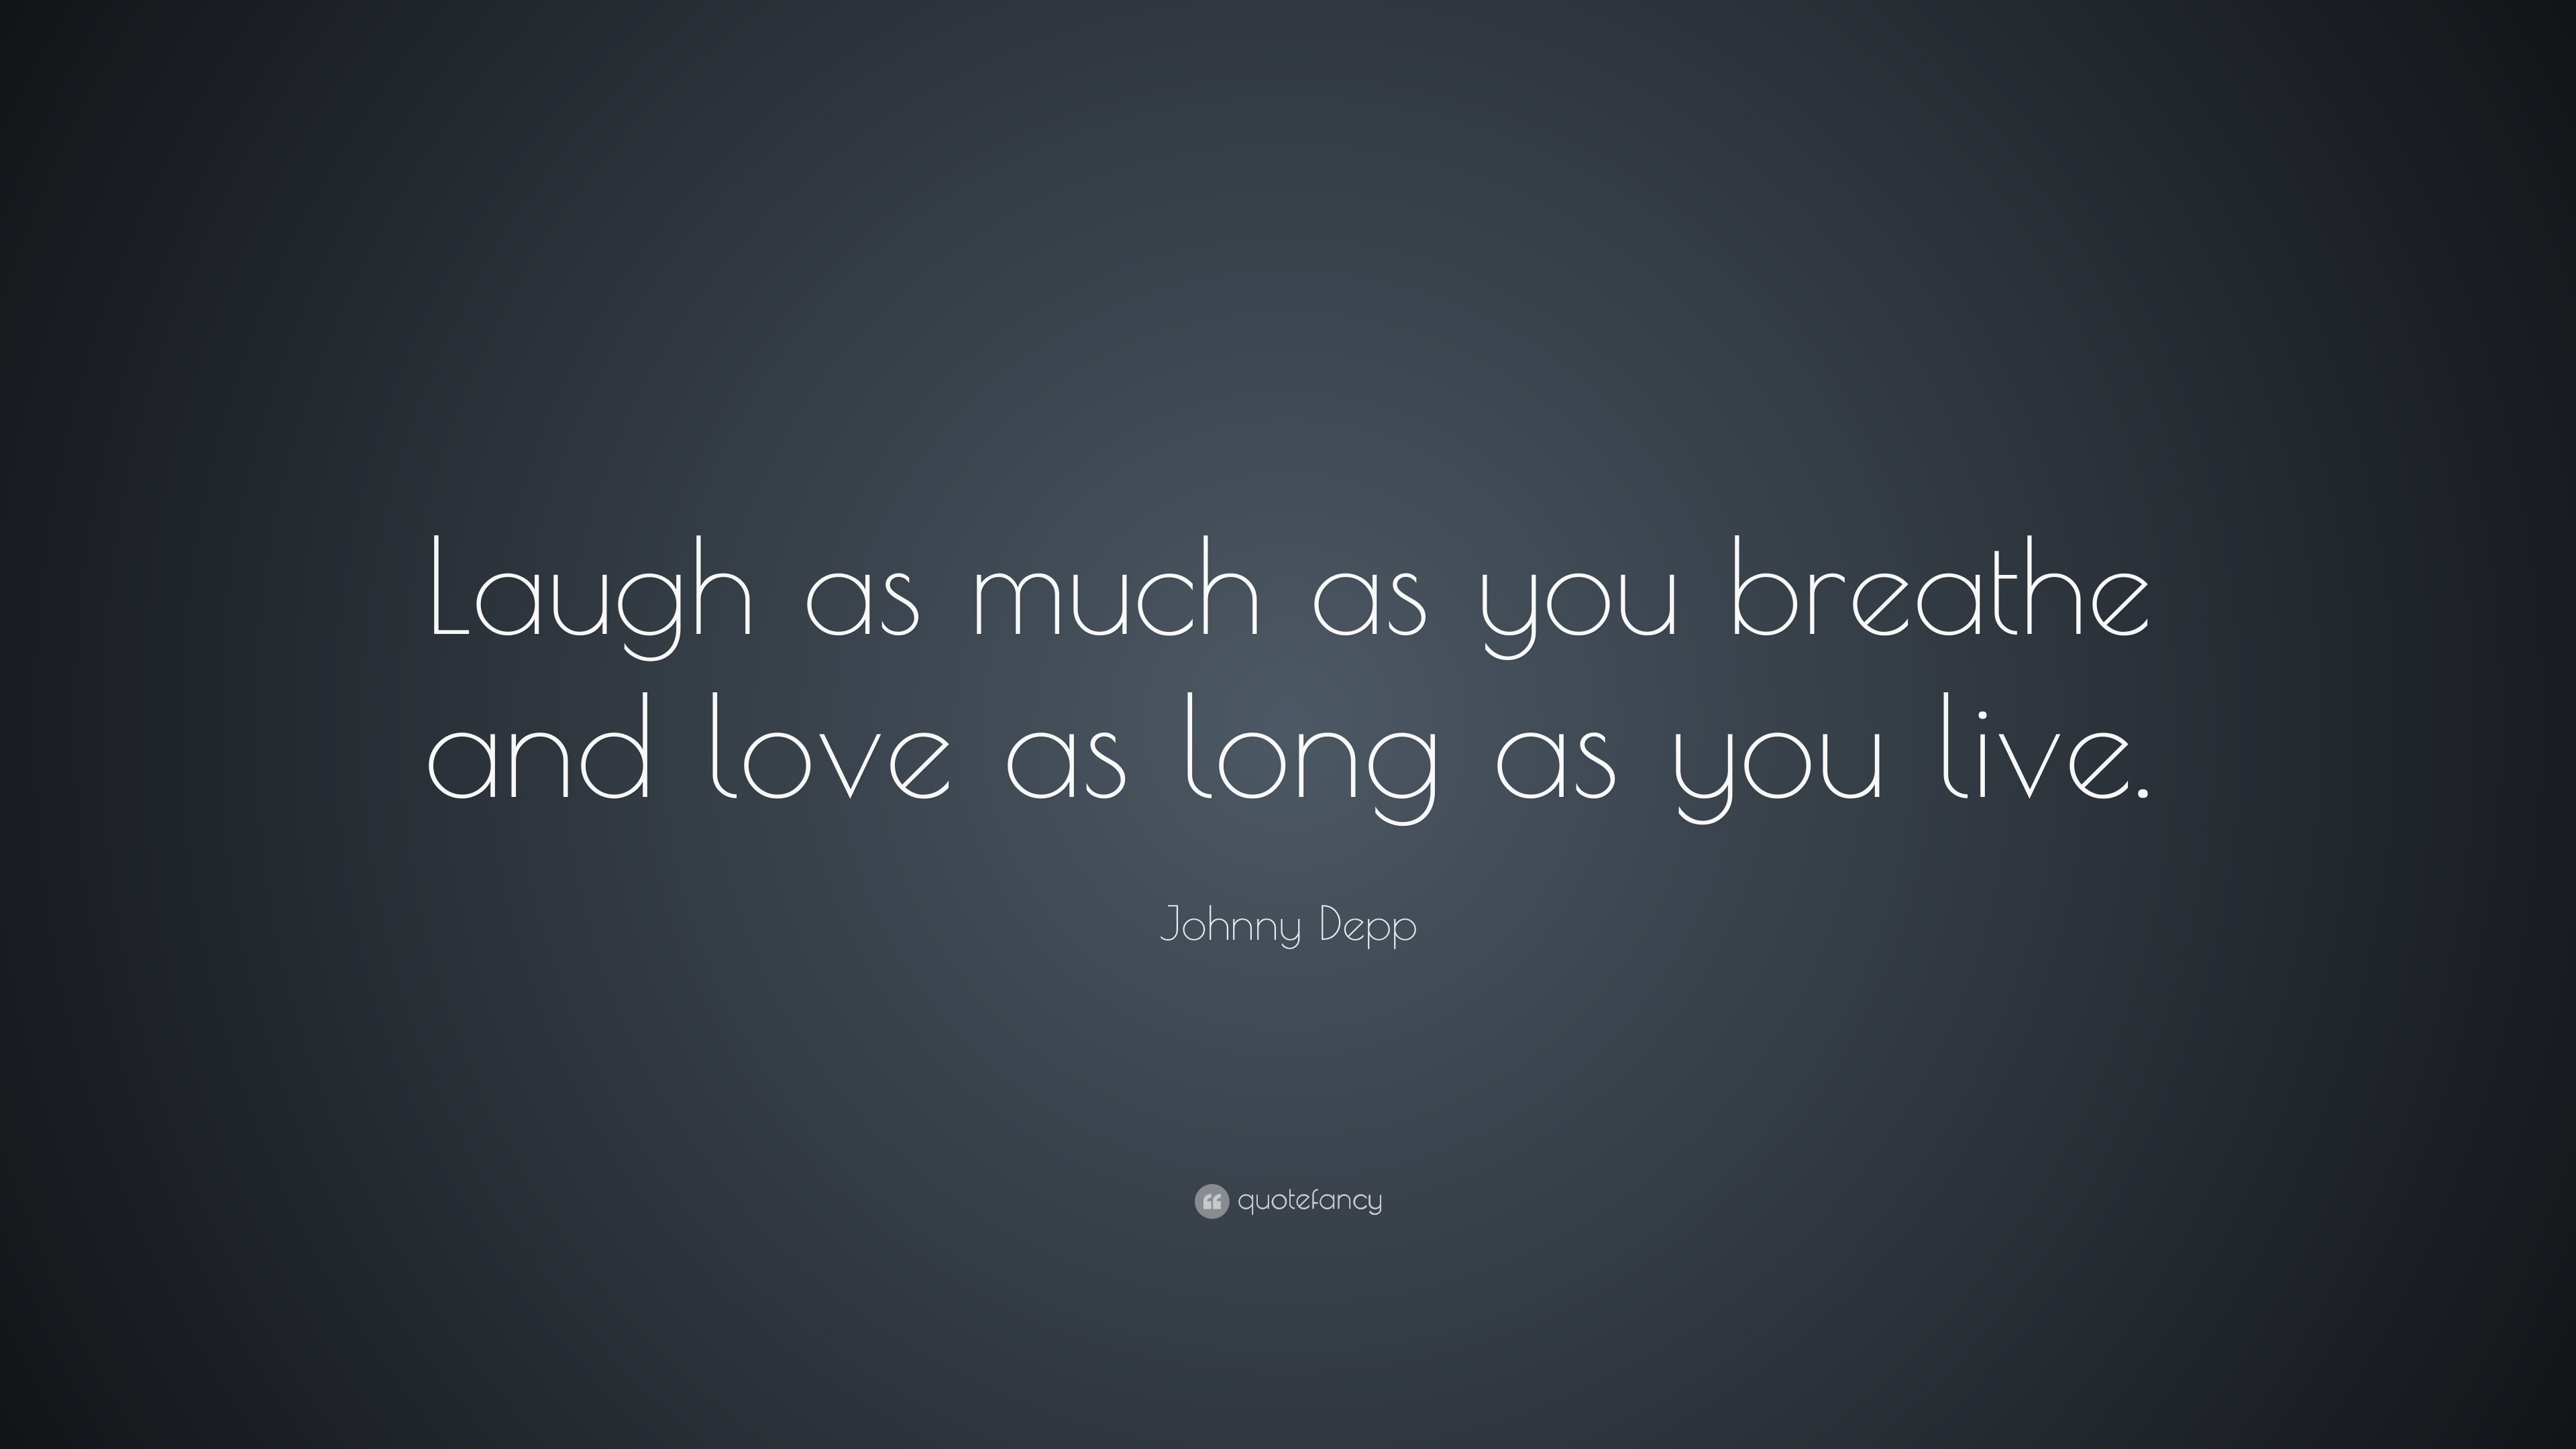 johnny depp relationship quote